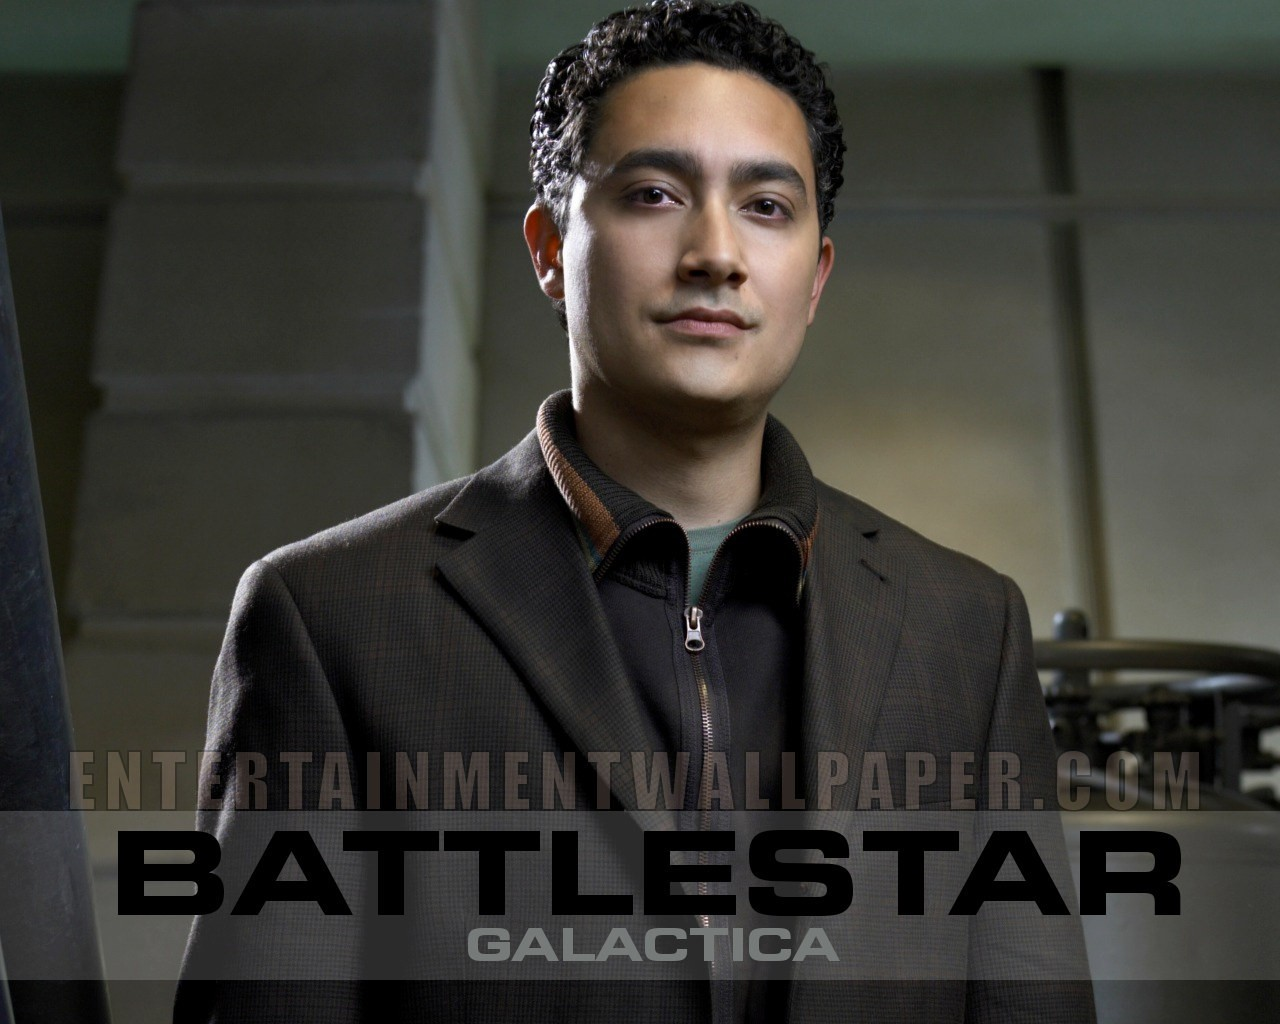 battlestar galactica Alessandro Juliani HD Wallpaper